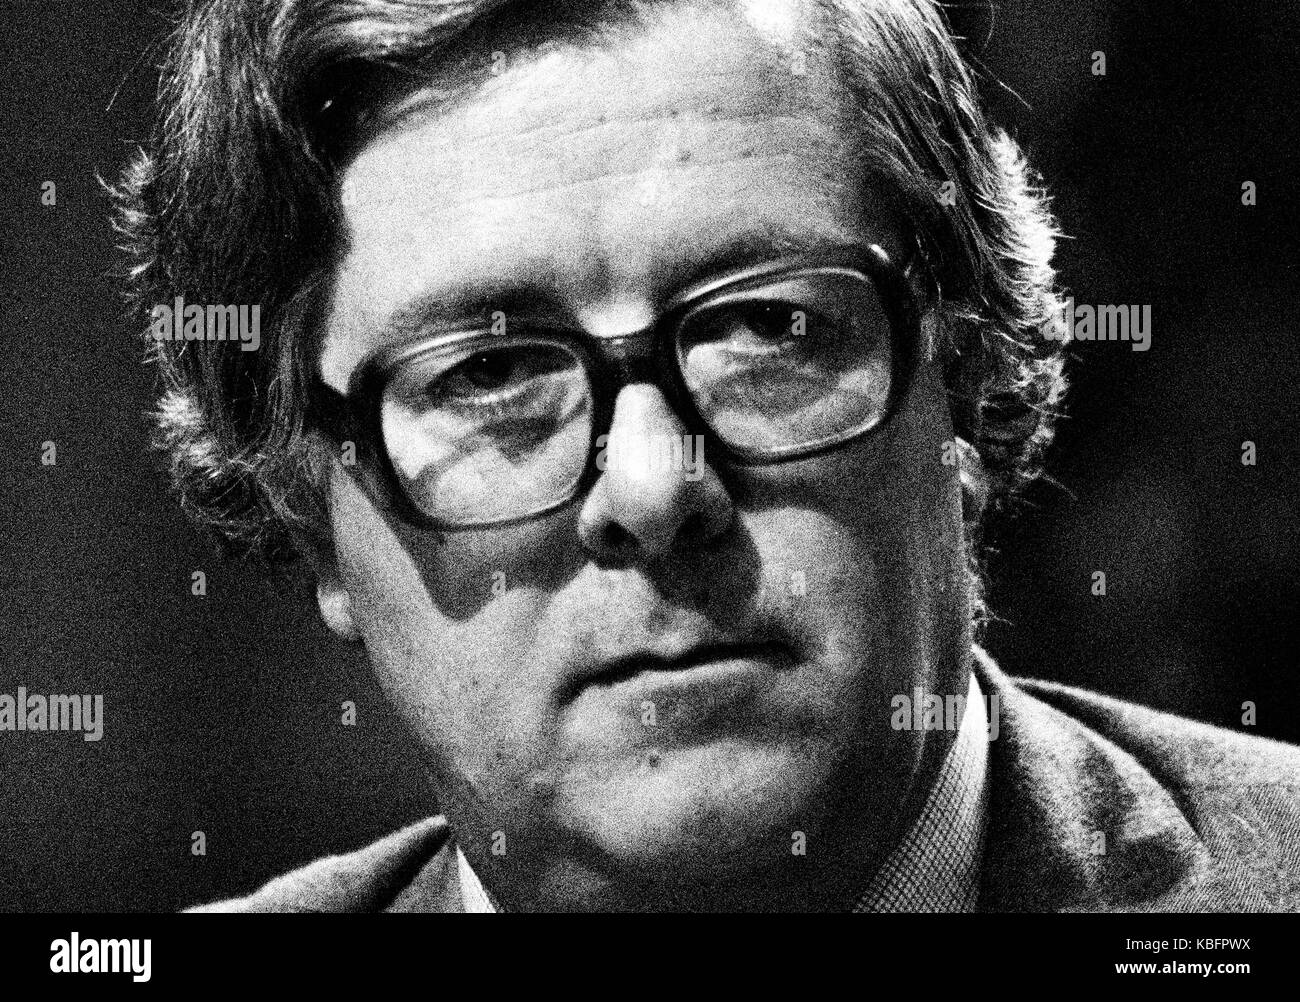 Richard Edward Geoffrey Howe, Baron Howe of Aberavon, CH, PC, QC, known from 1970 to 1992 as Sir Geoffrey Howe, - Stock Image